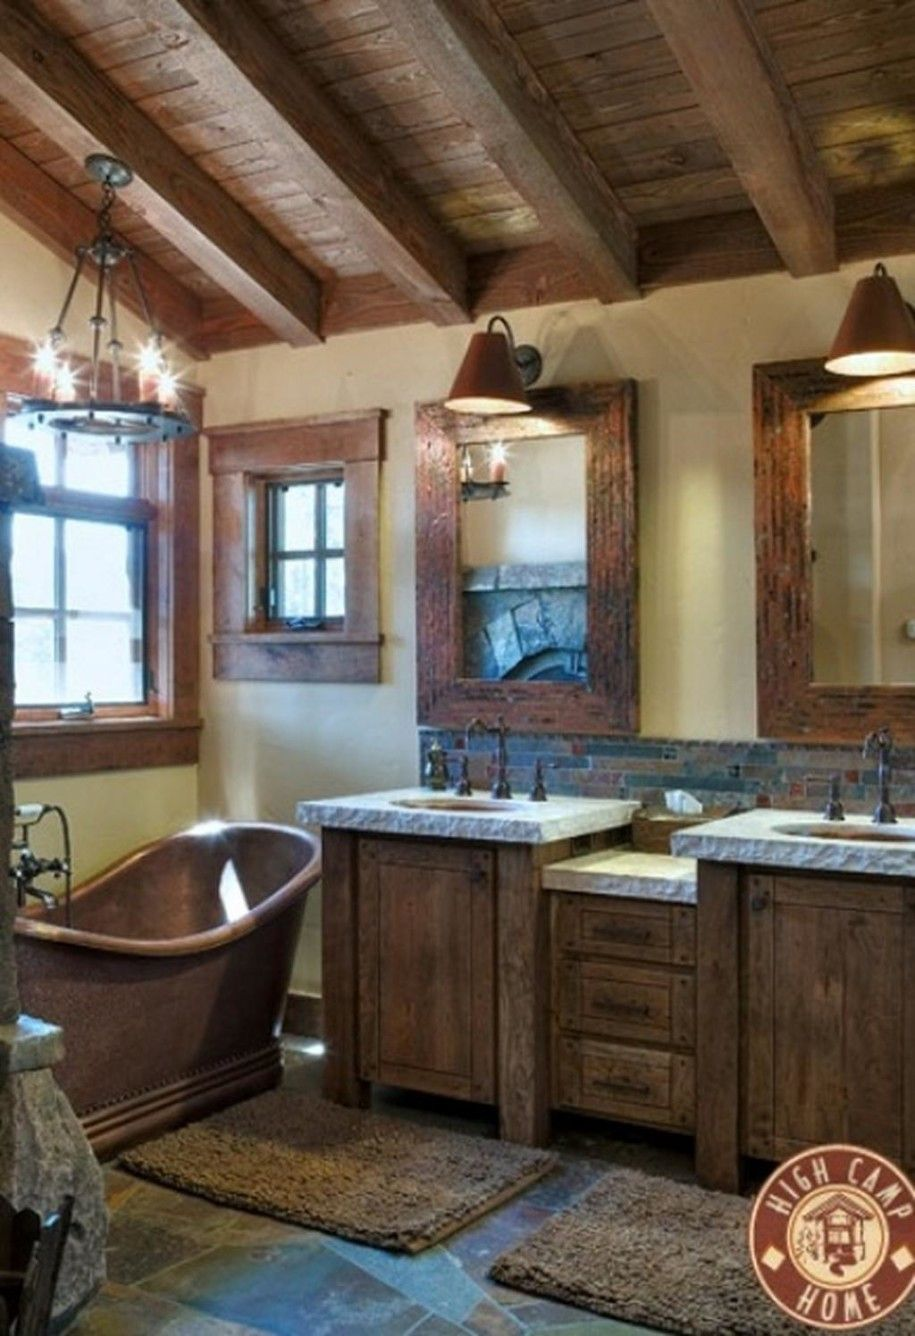 46 bathroom interior designs made in rustic barns rustic Rustic country style bathrooms